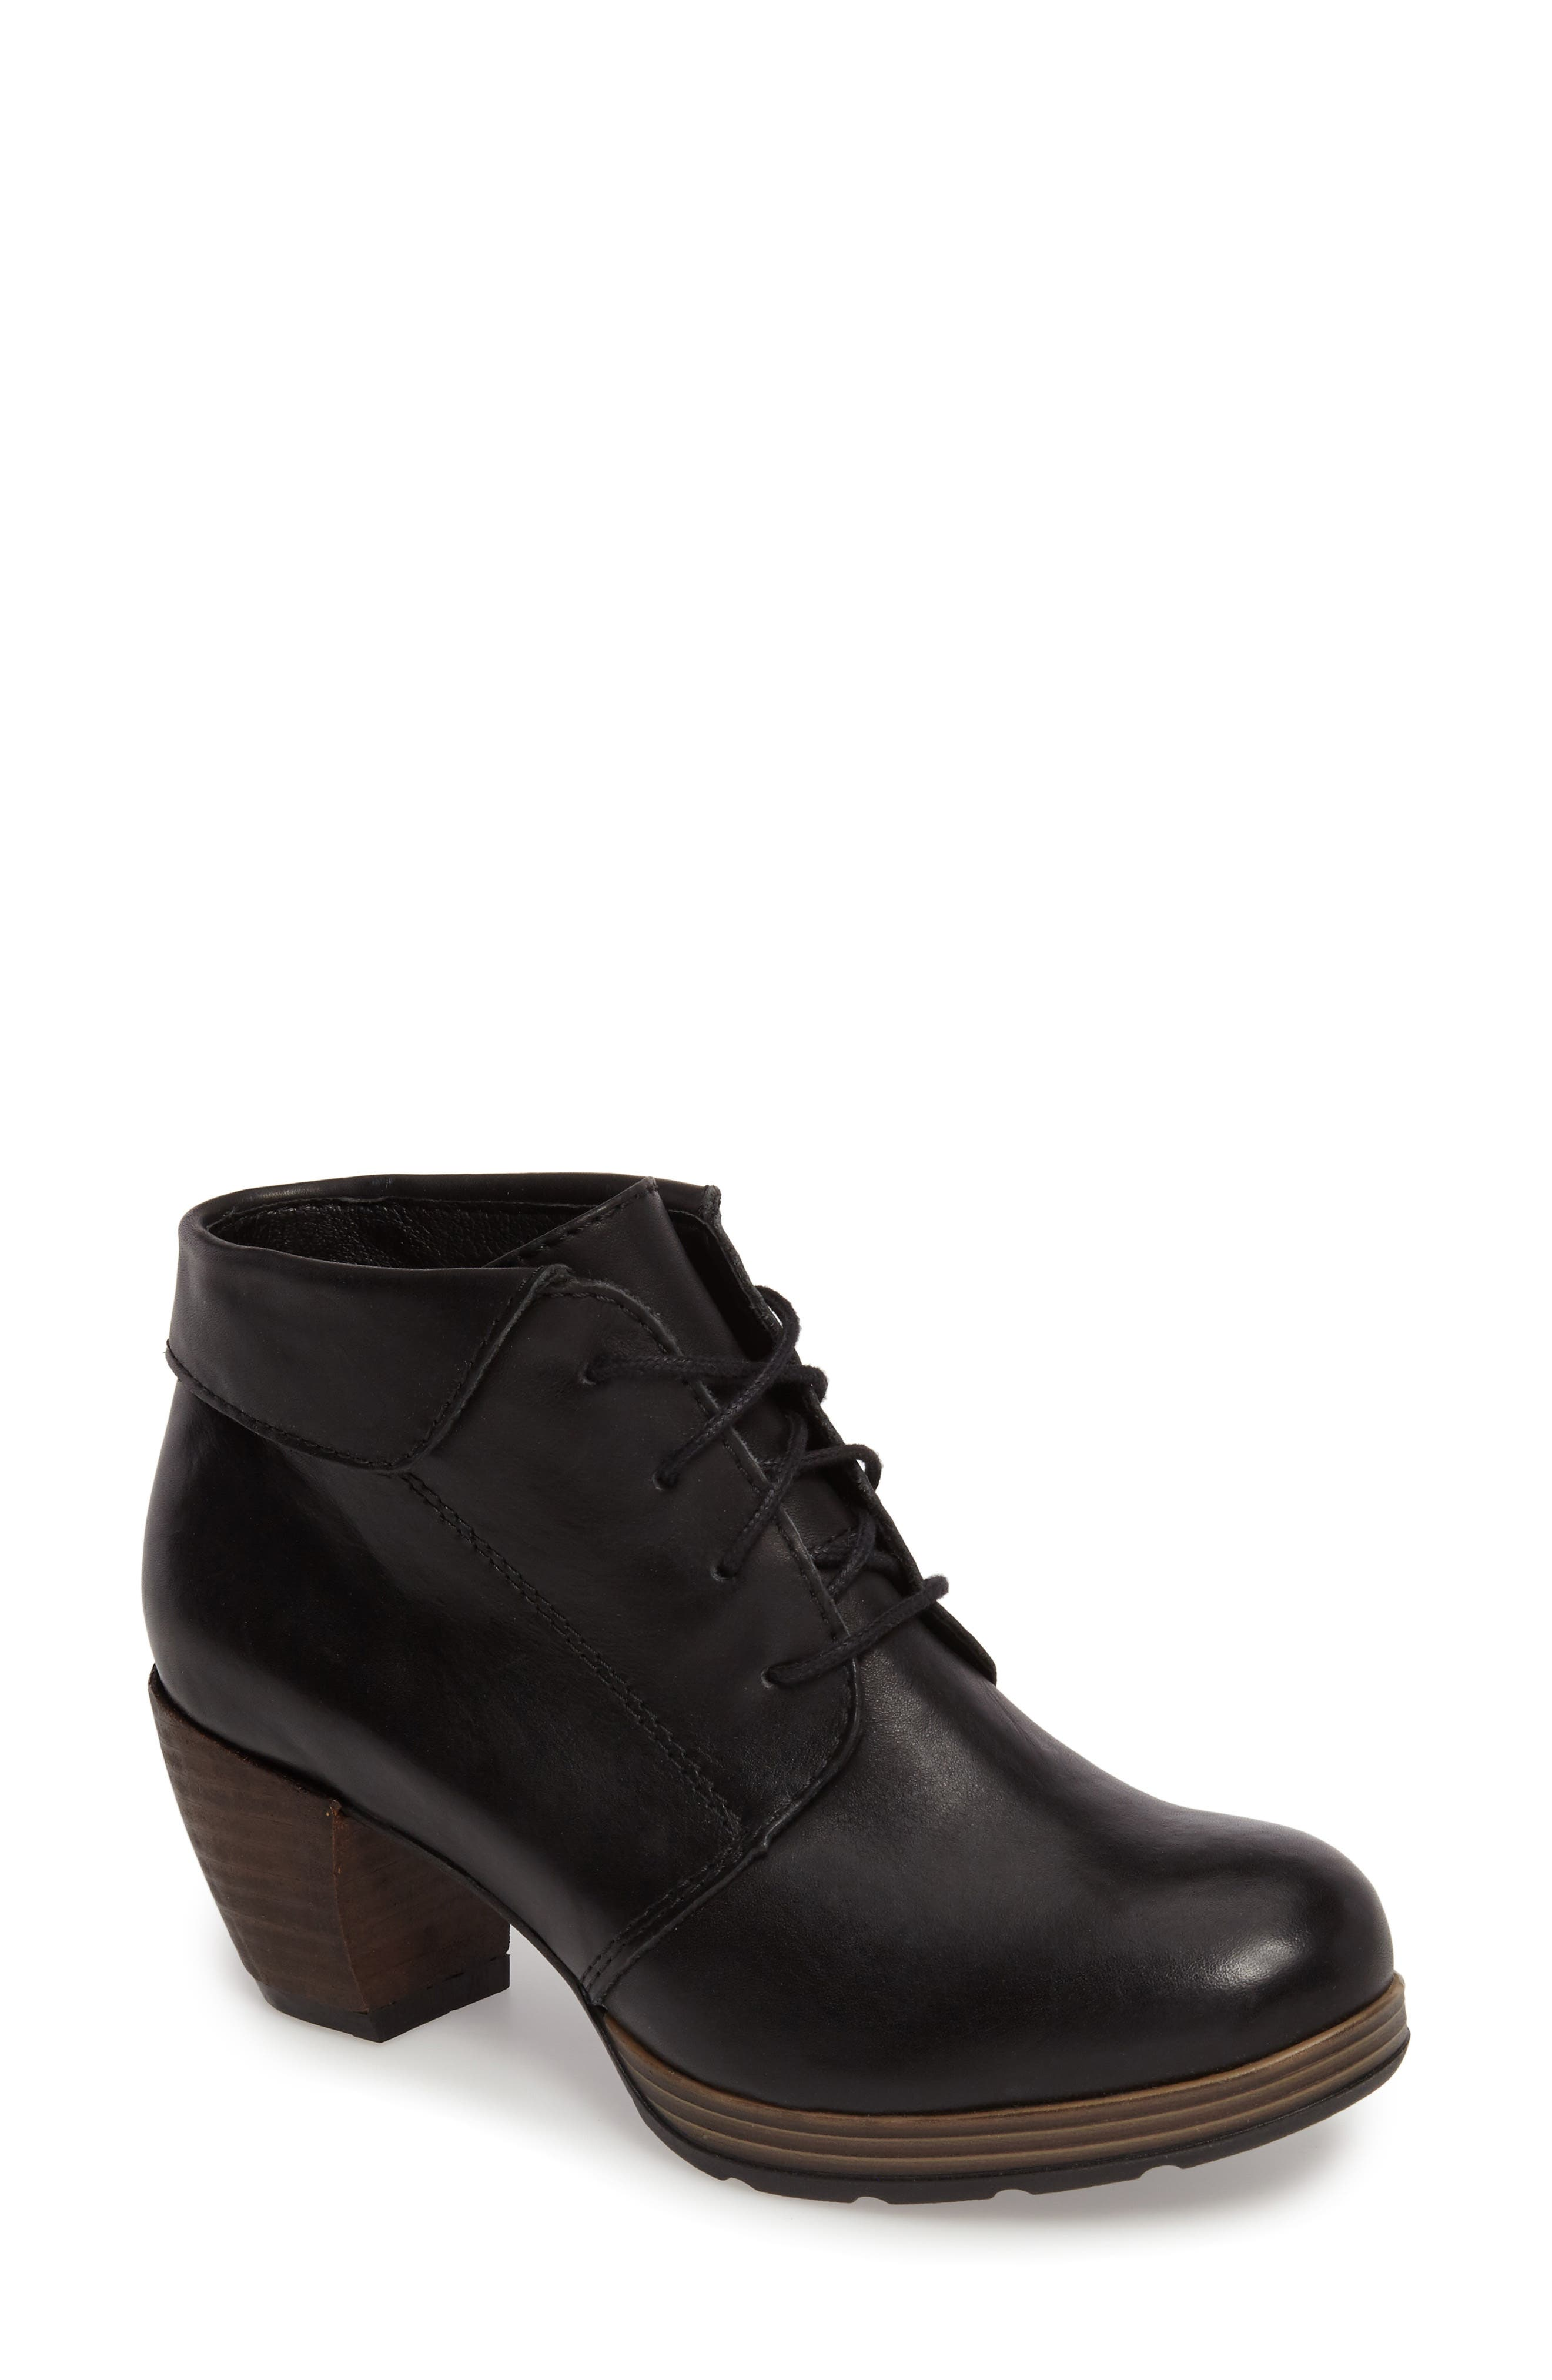 Jacquerie Lace-Up Bootie,                             Main thumbnail 1, color,                             Black Leather